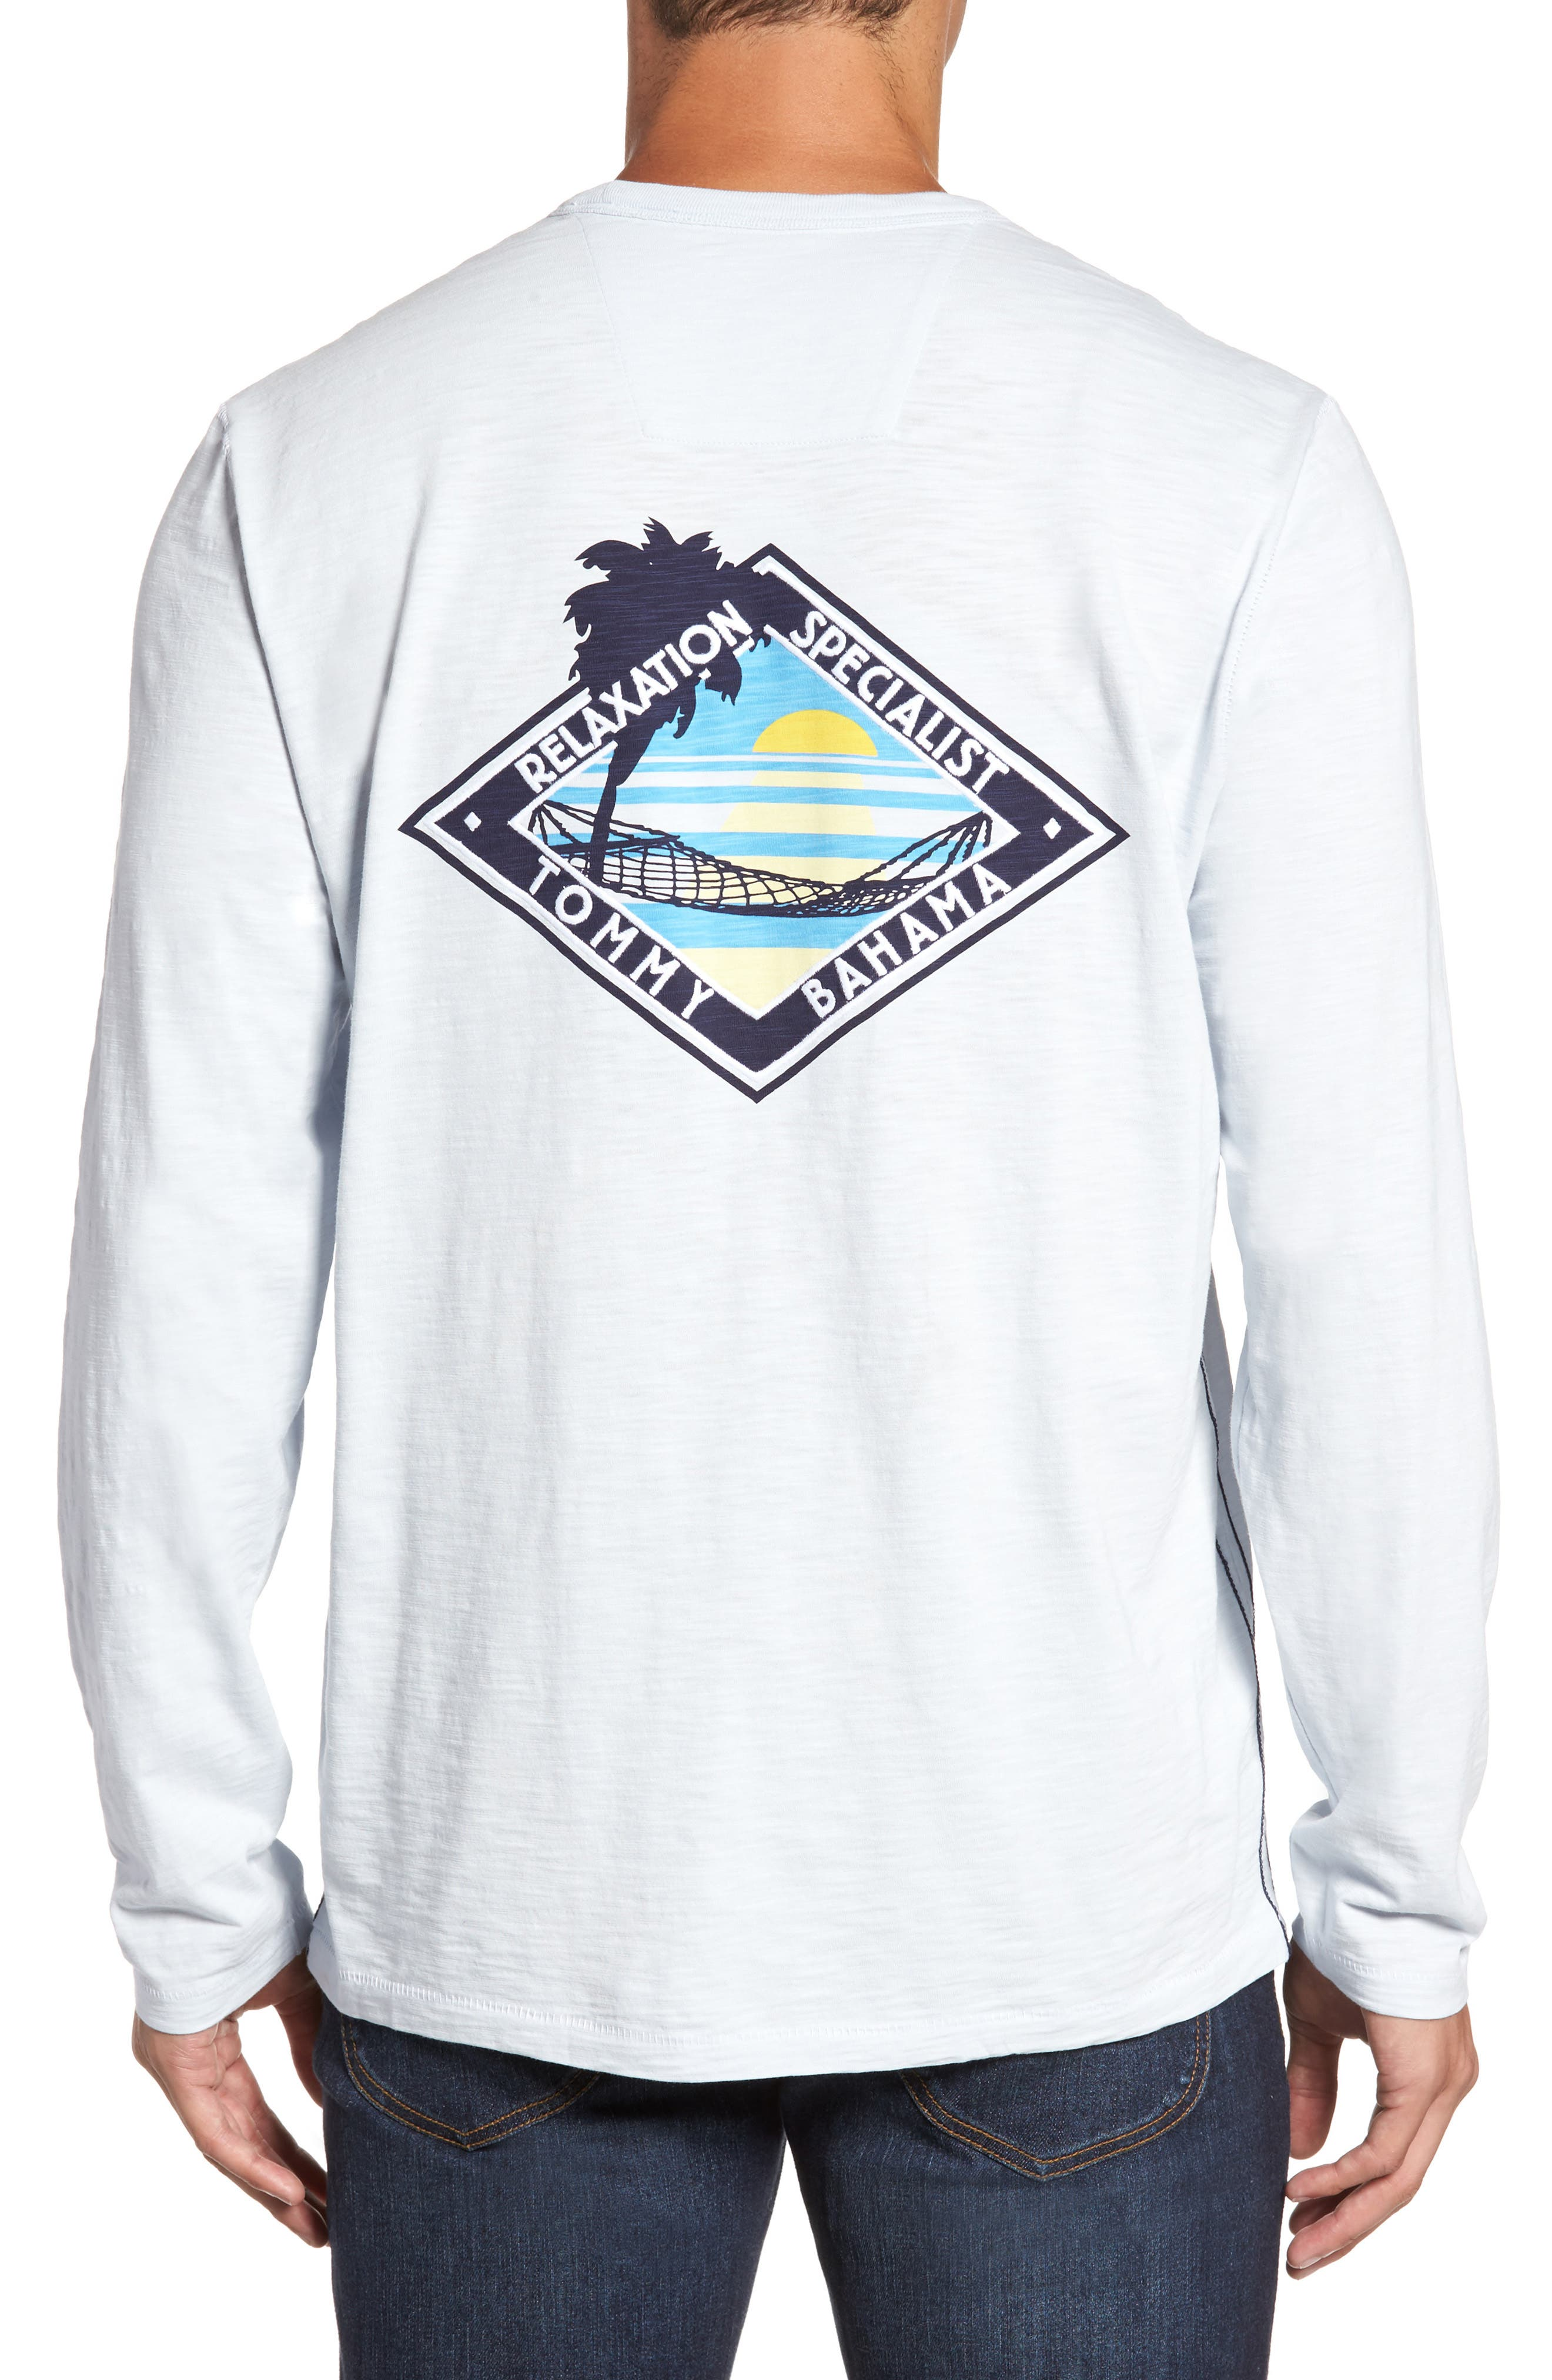 Main Image - Tommy Bahama Relaxation Specialist T-Shirt